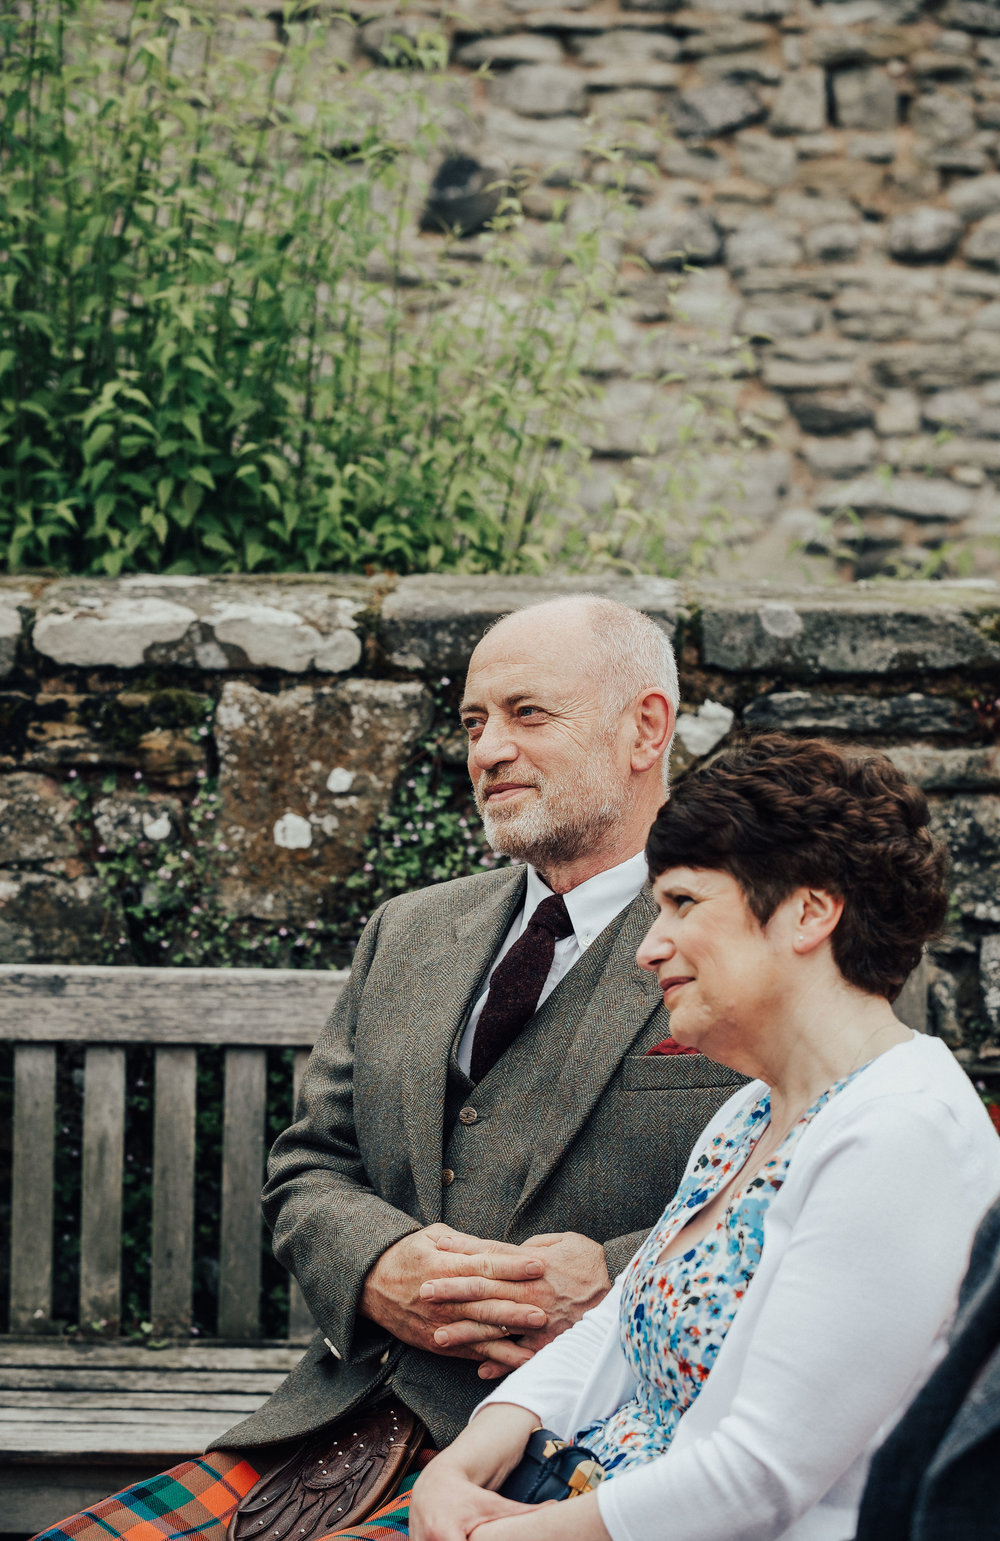 PJ_PHILLIPS_PHOTOGRAPHY_EDINBURGH_WEDDERBURN_BARNS_WEDDING_EDINBURGH_WEDDING_PHOTOGRAPHER_71.jpg